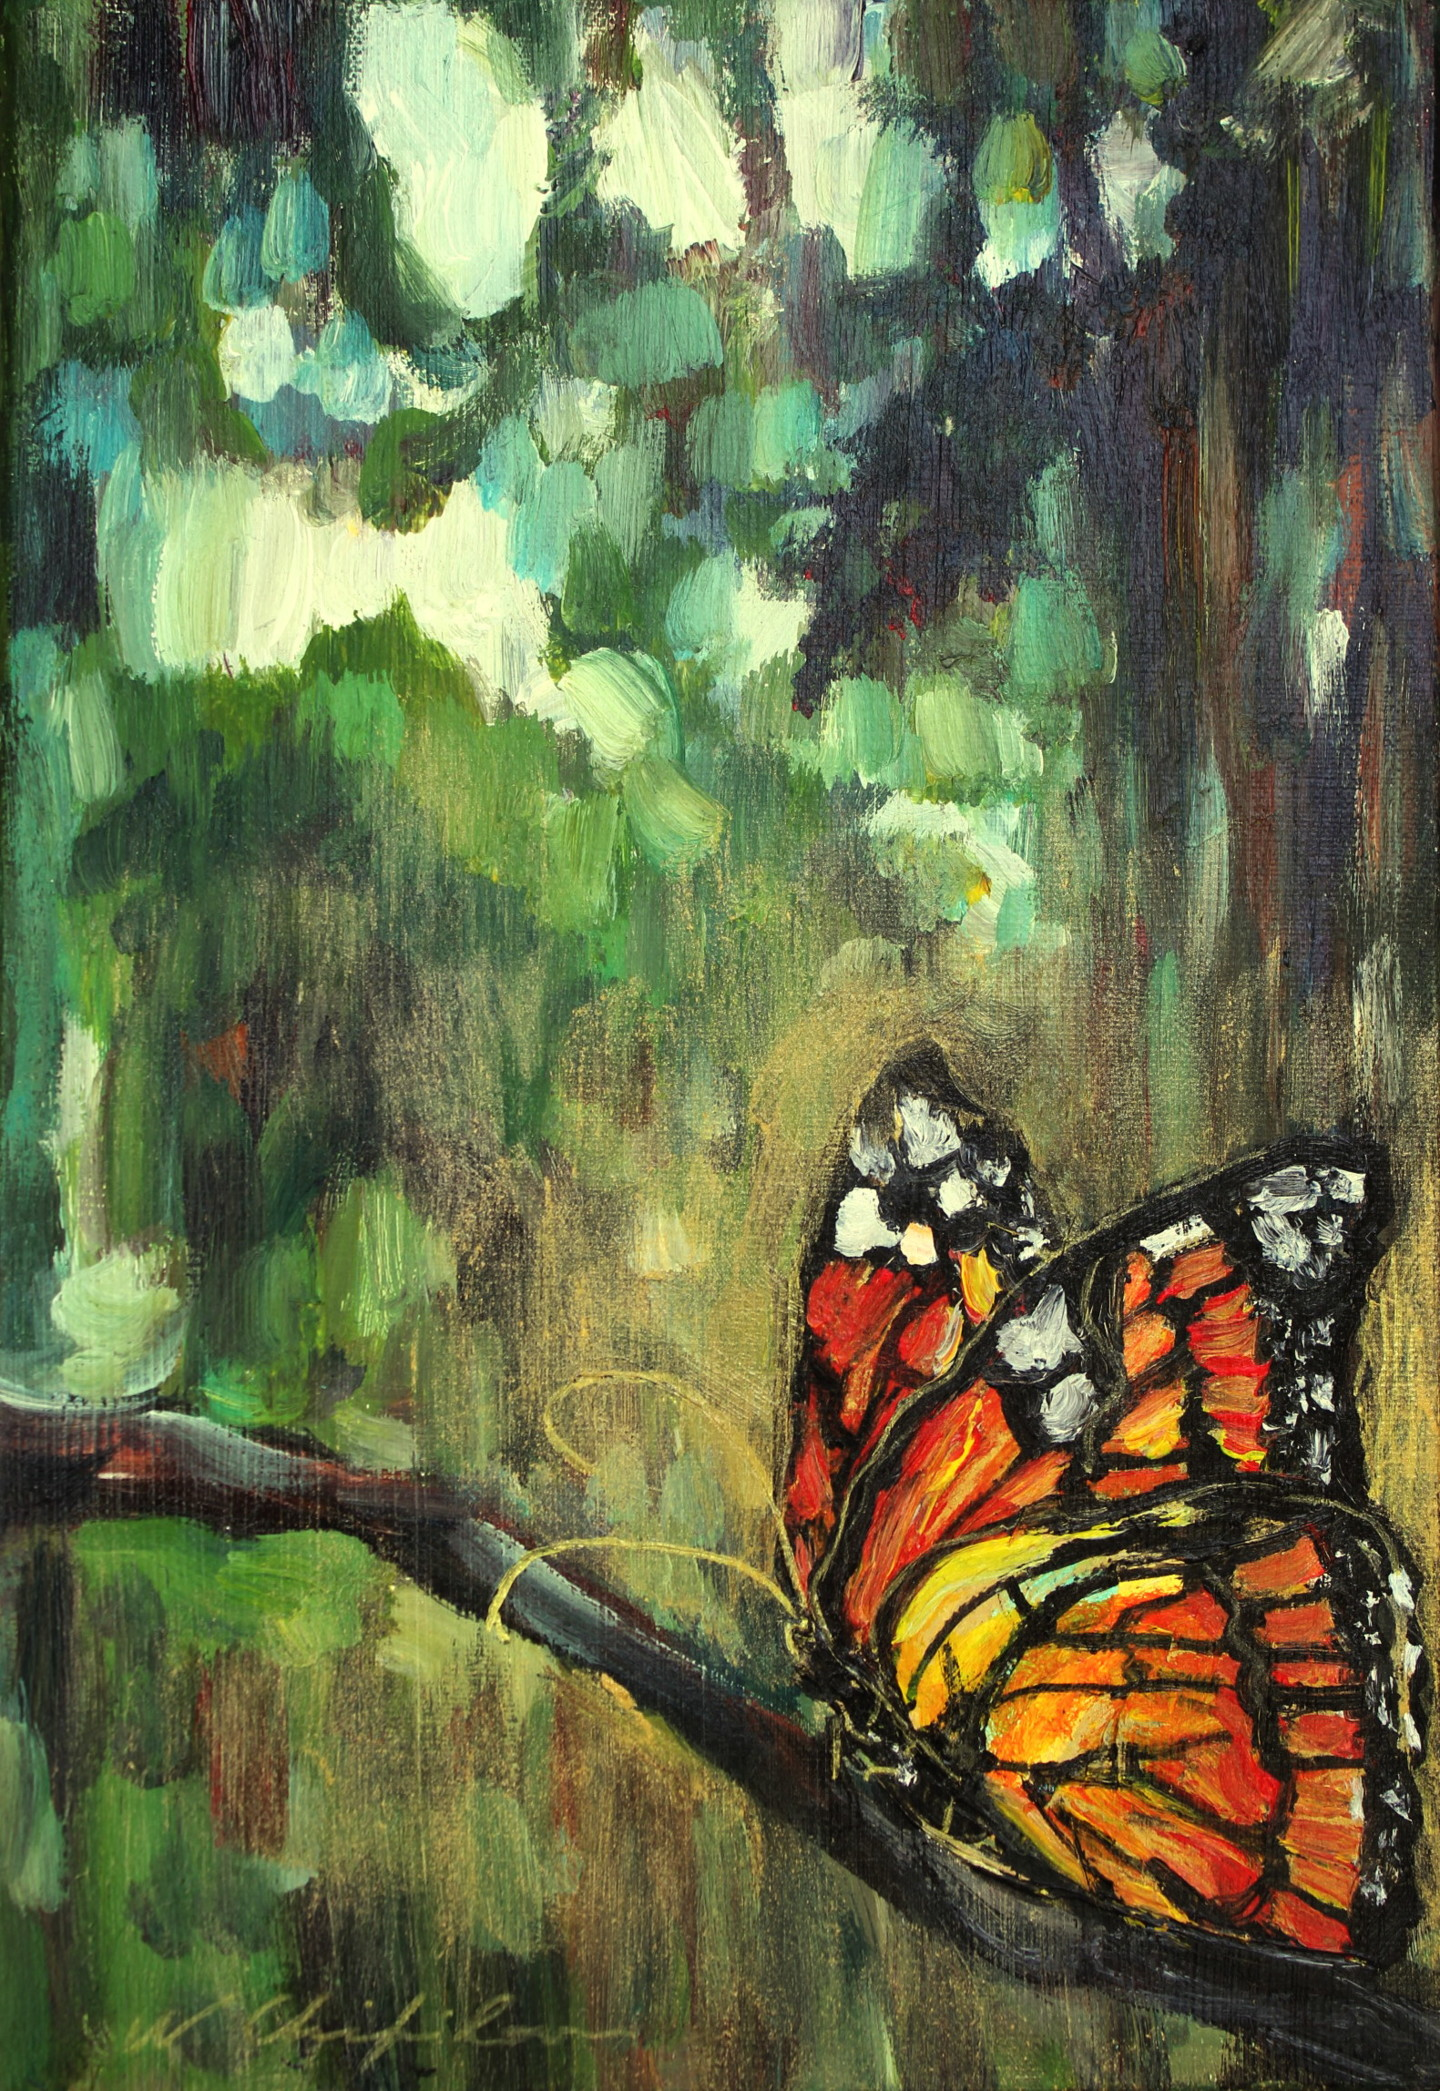 Nath Chipilova (Atelier NN art store) - Into the wood, butterfly